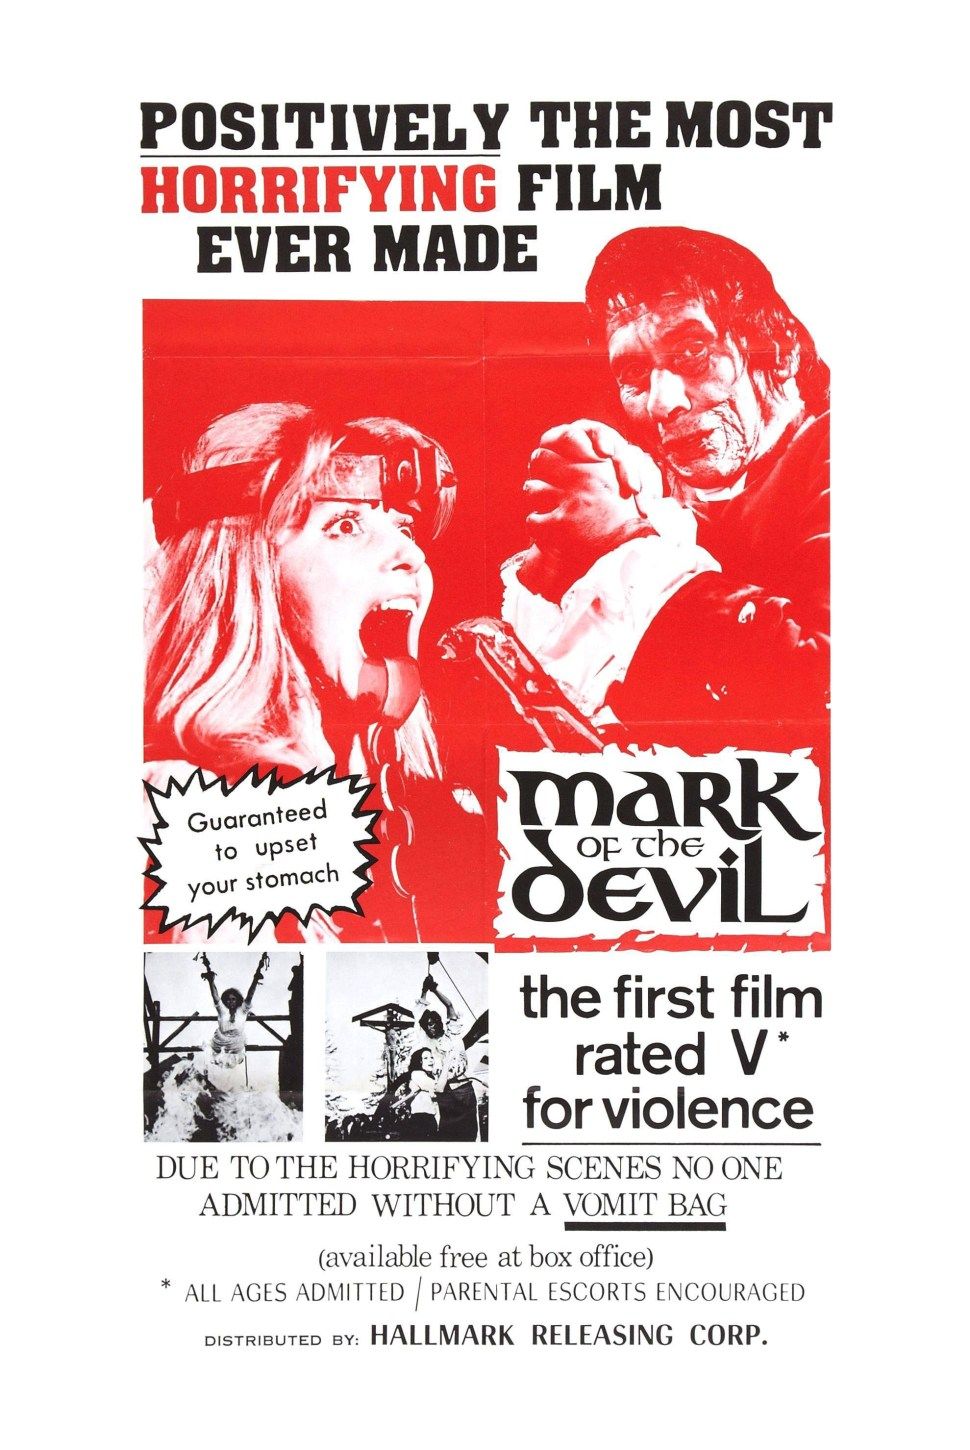 HMM mark of the devil poster